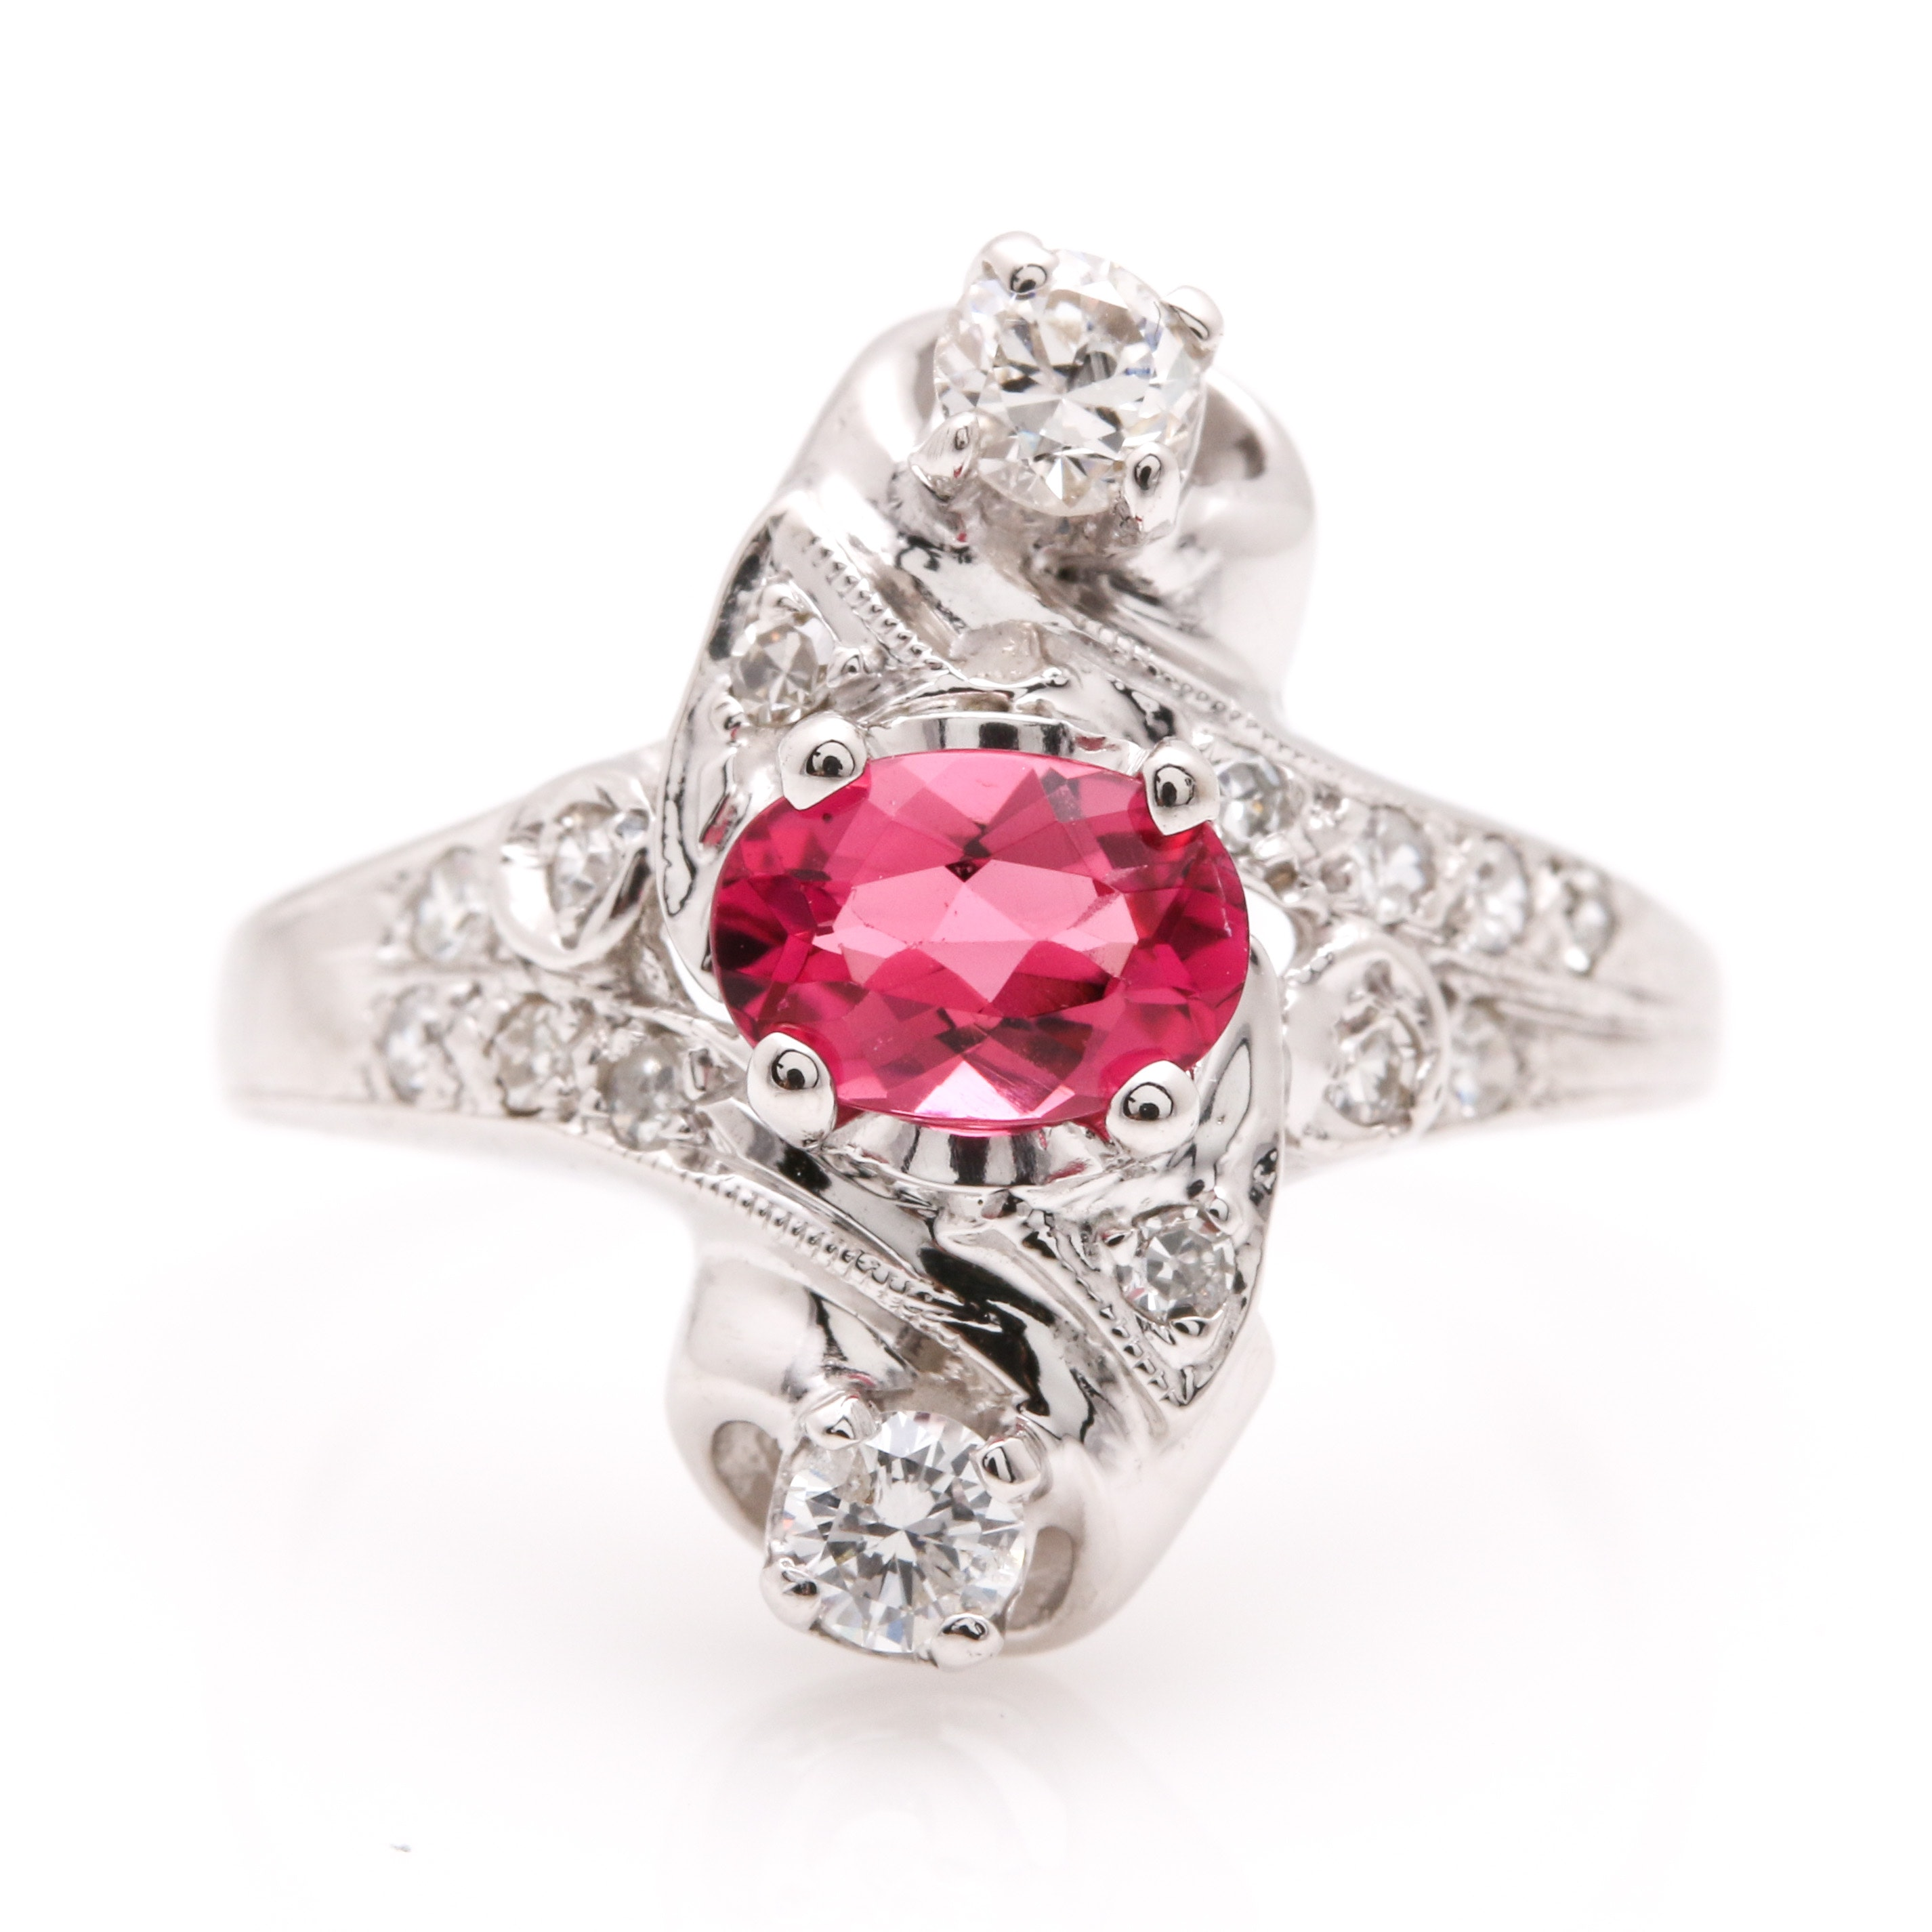 14K White Gold Hot Pink Tourmaline and Diamond Ring